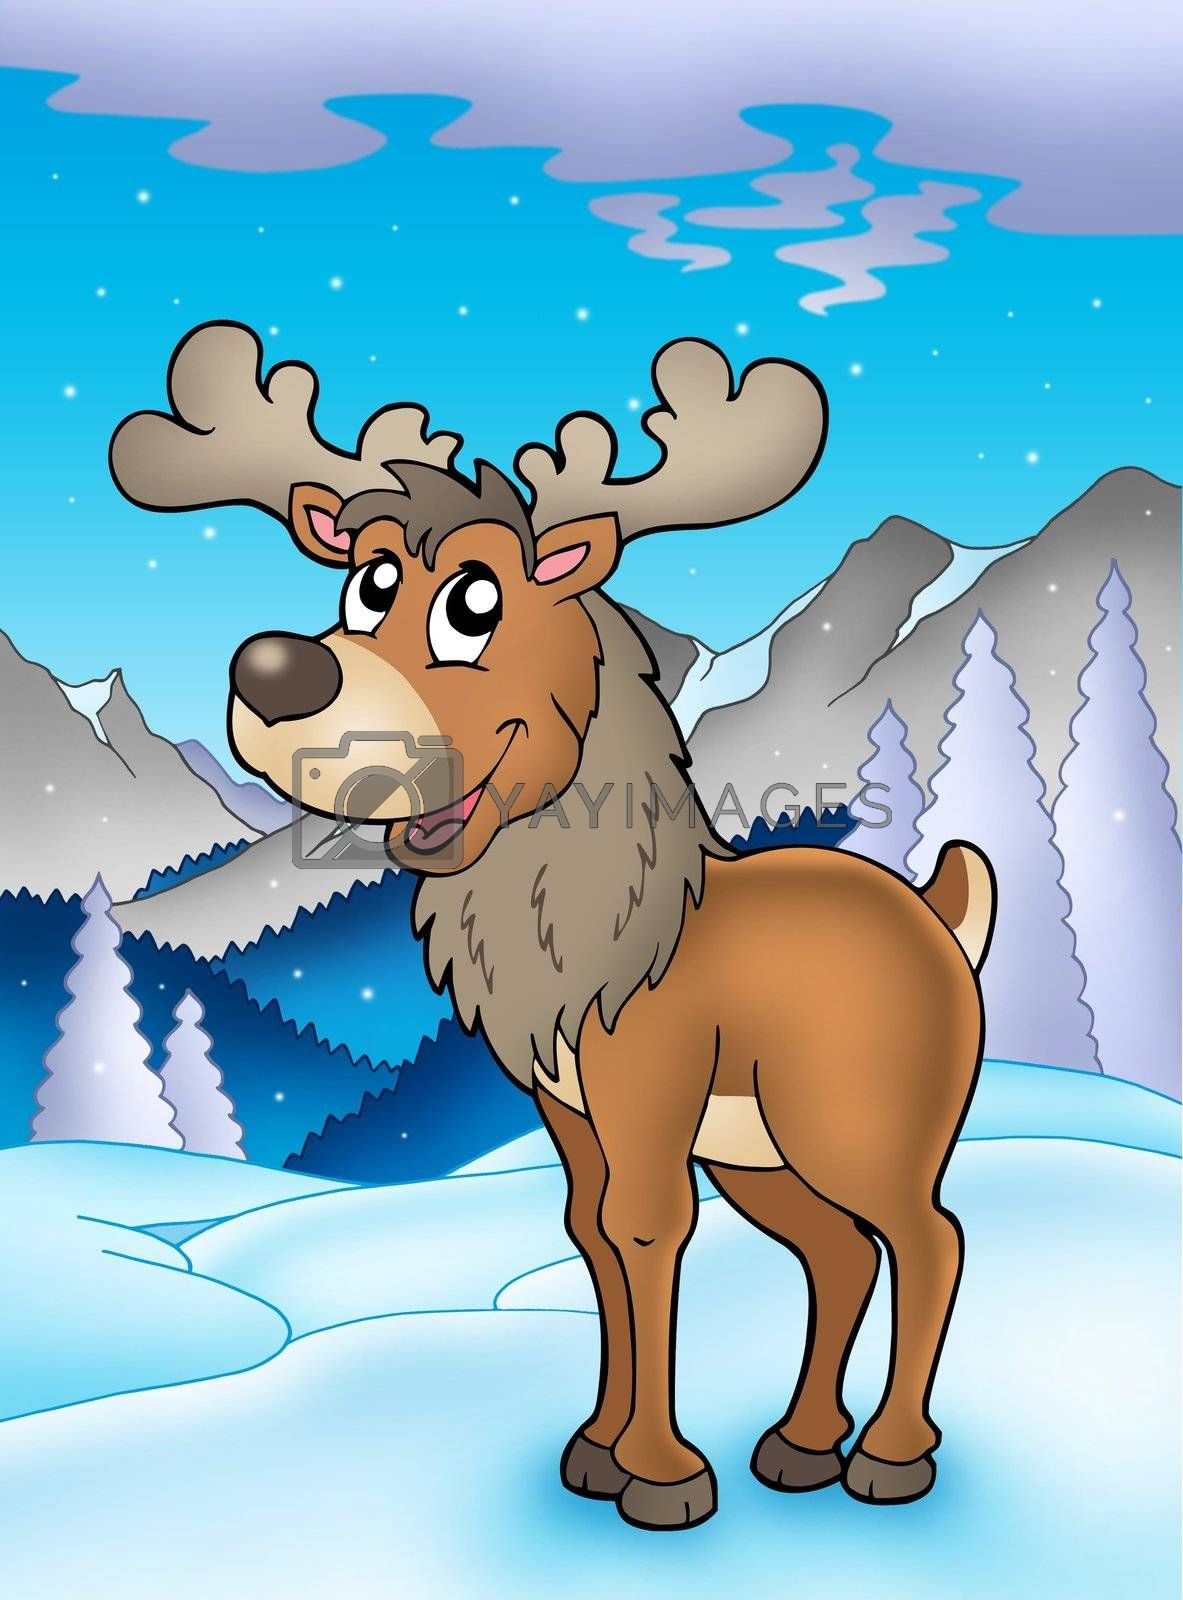 Winter theme with reindeer - color illustration.